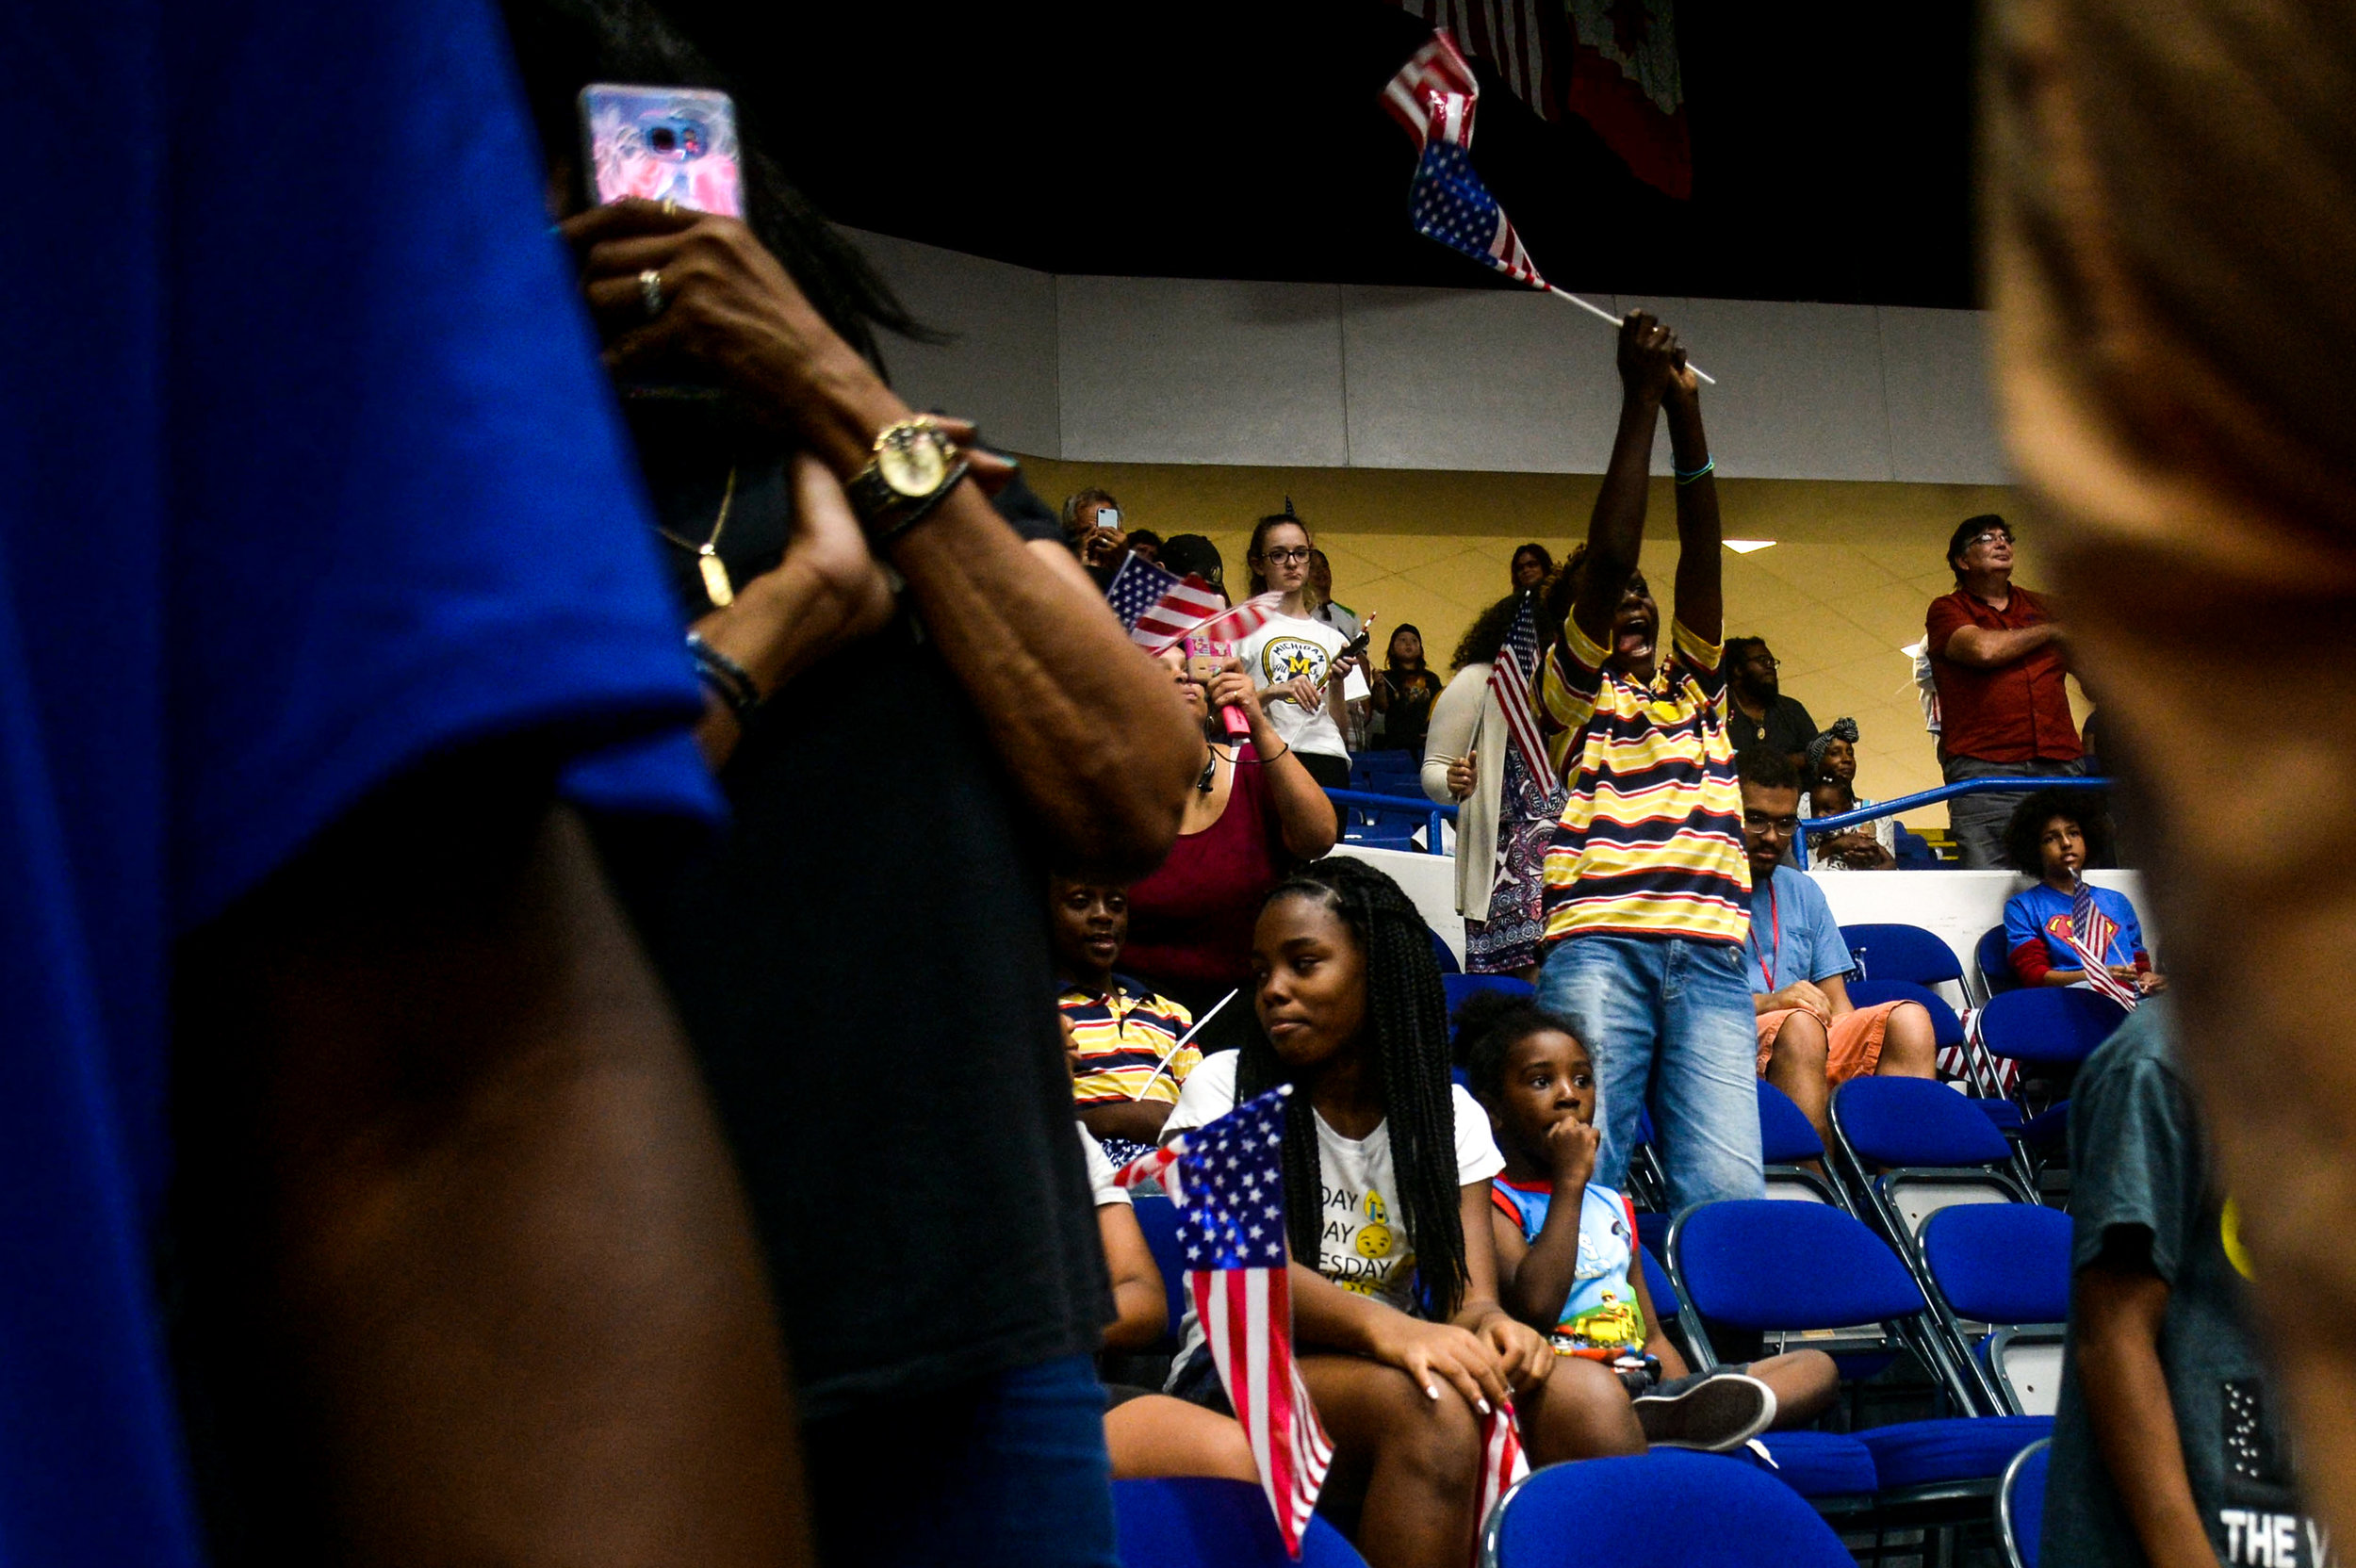 Romiel Williams, 11, of Flint, cheers during the Community-Wide Celebration for Claressa Shields on Thursday, Aug. 25, 2016 at the Dort Federal Event Center in Flint. Nearly 700 people gathered to hear Flint Boxer Claressa  Shields, the only American back-to-back Olympic gold medalist.